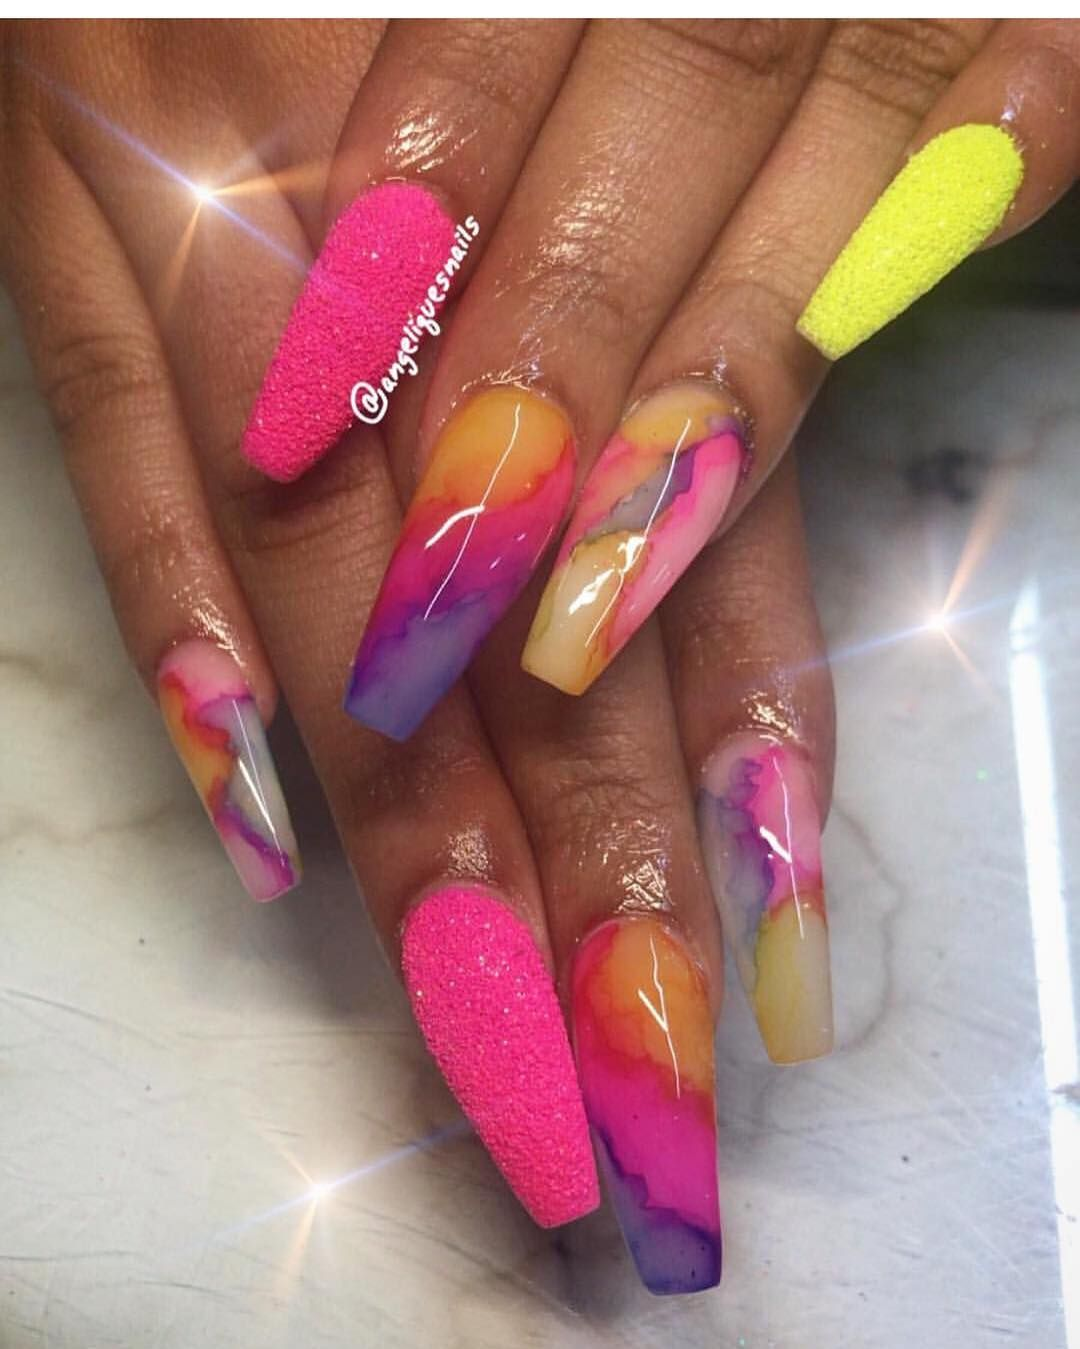 Nails of Instagram 😱 Best Acrylic Nail Compilation 2019 #1